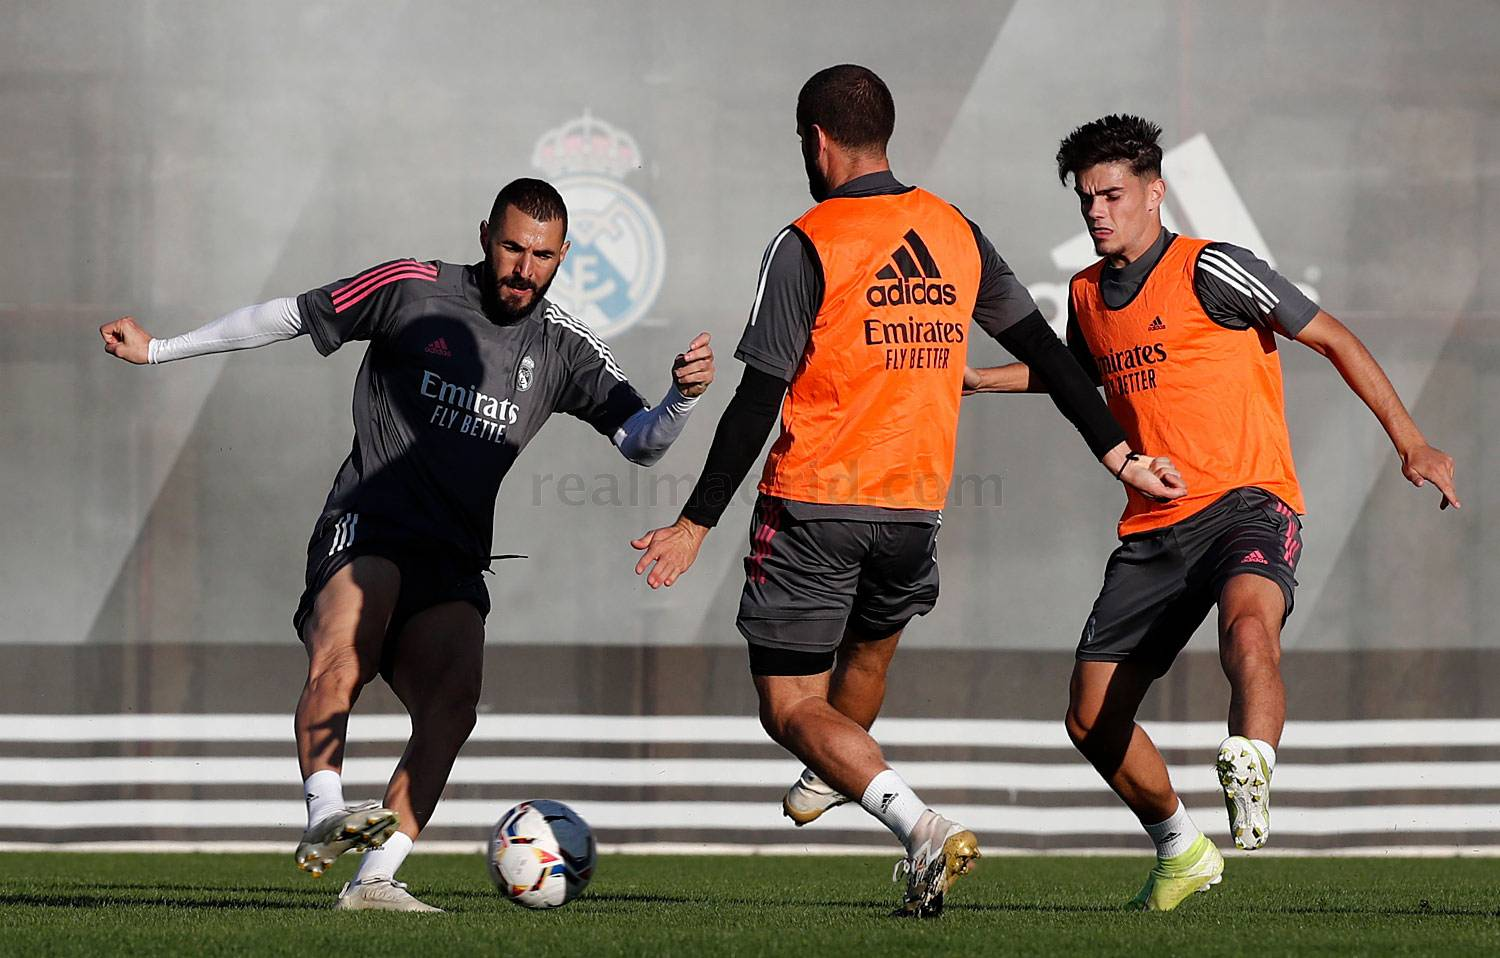 Real Madrid - Entrenamiento del Real Madrid  - 06-10-2020